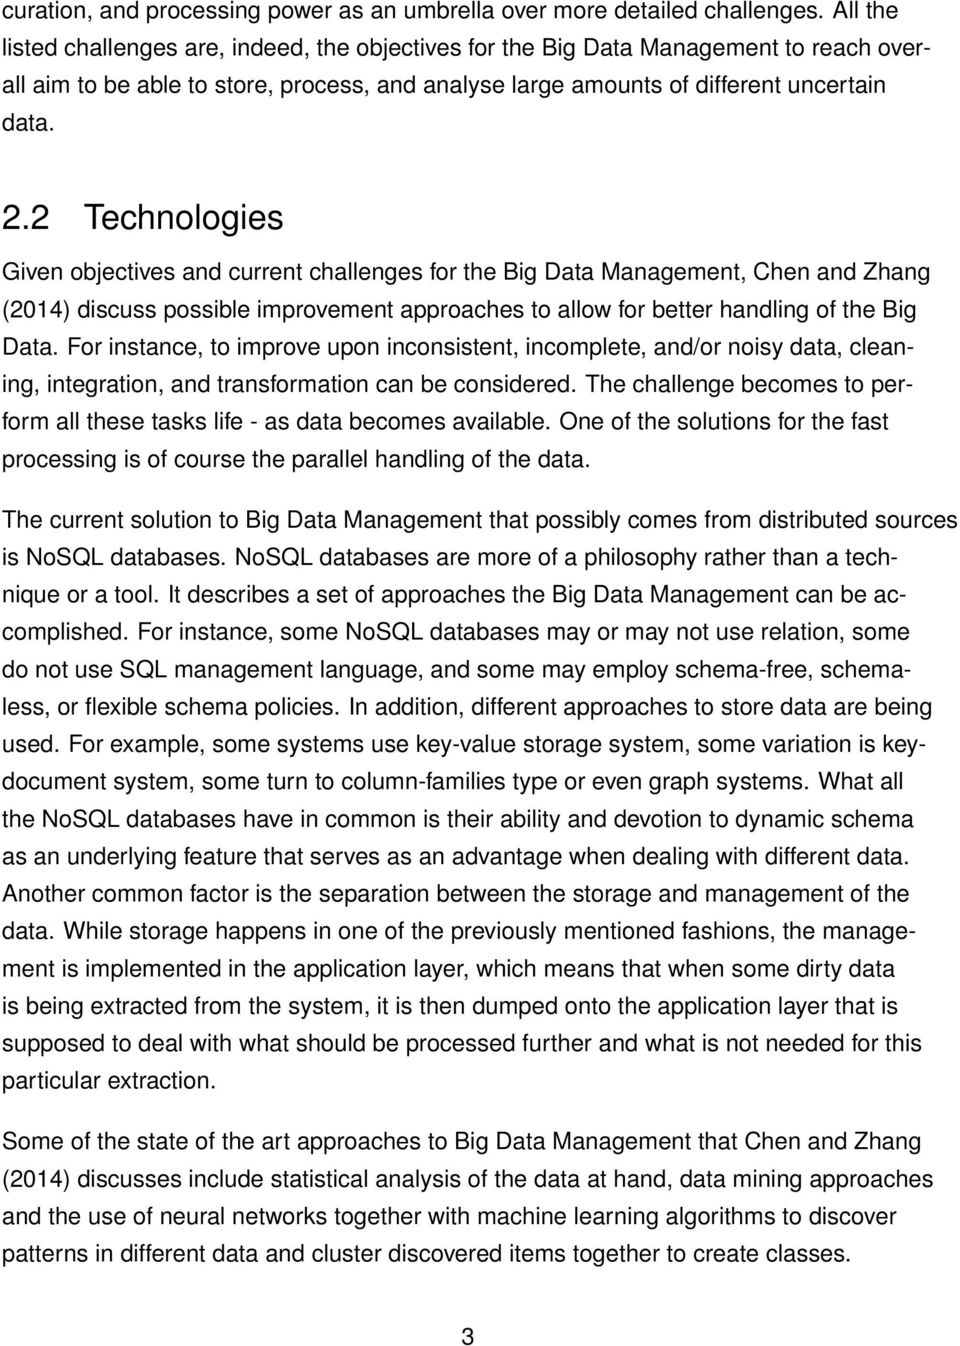 2 Technologies Given objectives and current challenges for the Big Data Management, Chen and Zhang (2014) discuss possible improvement approaches to allow for better handling of the Big Data.